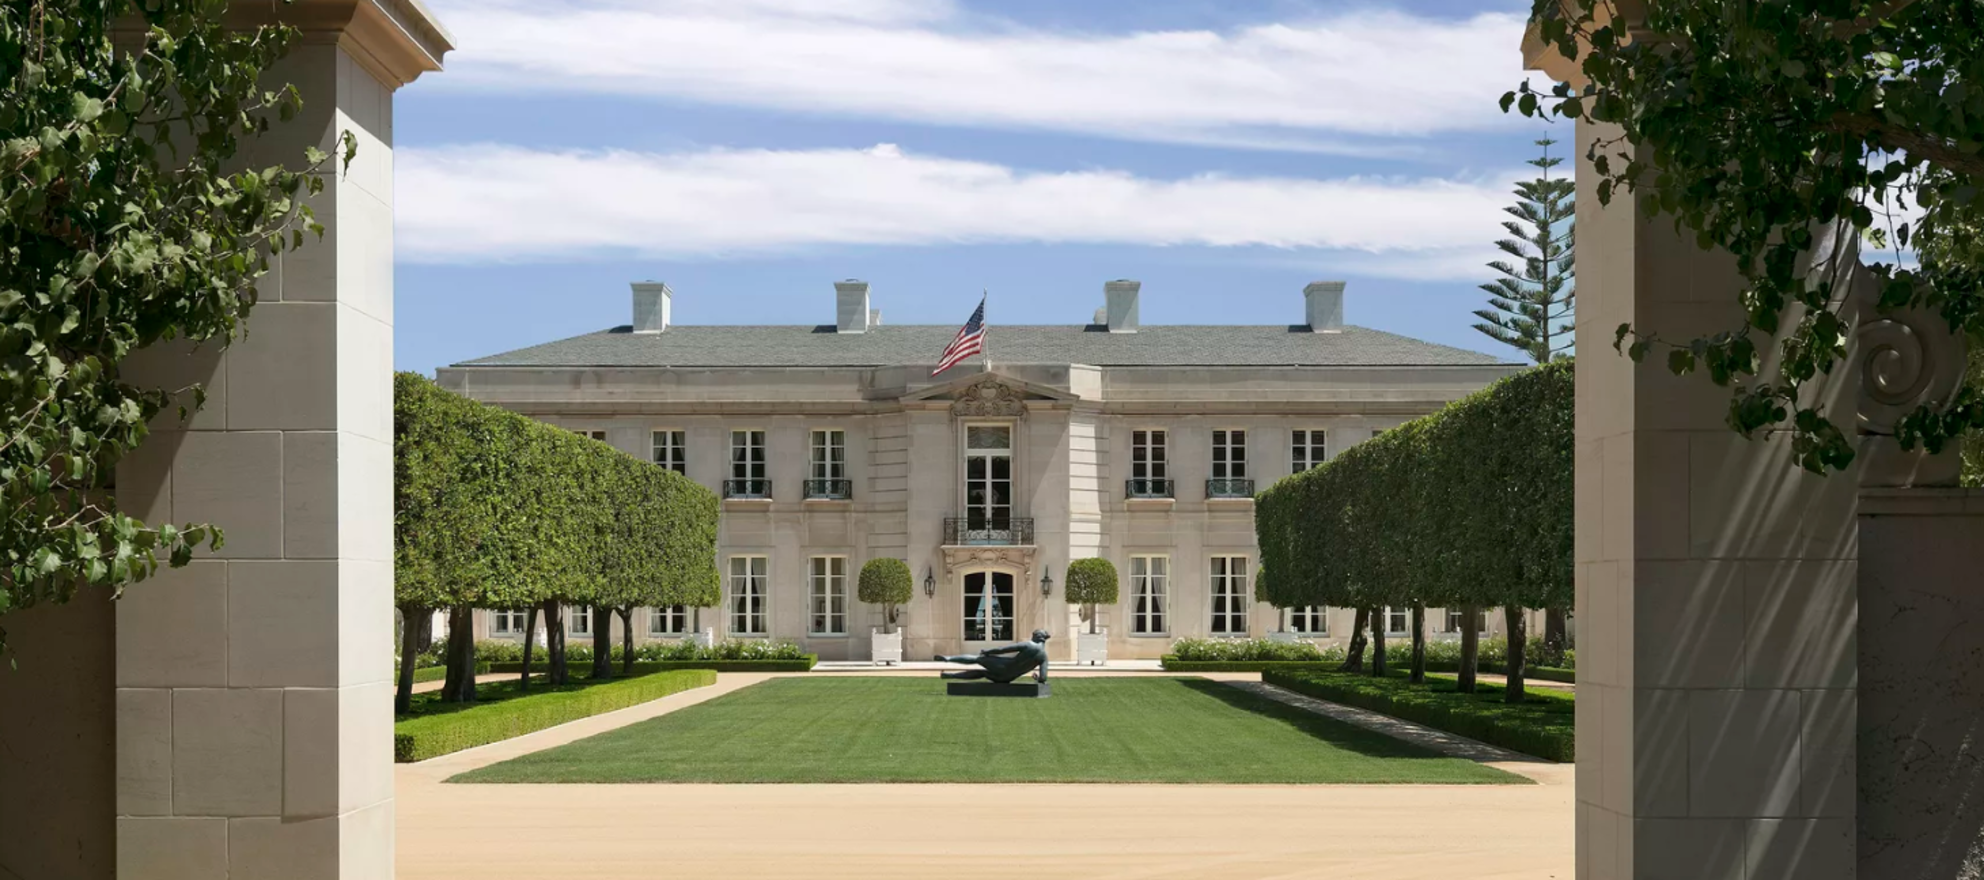 Bel Air mansion price cut $100M — still most expensive in the US